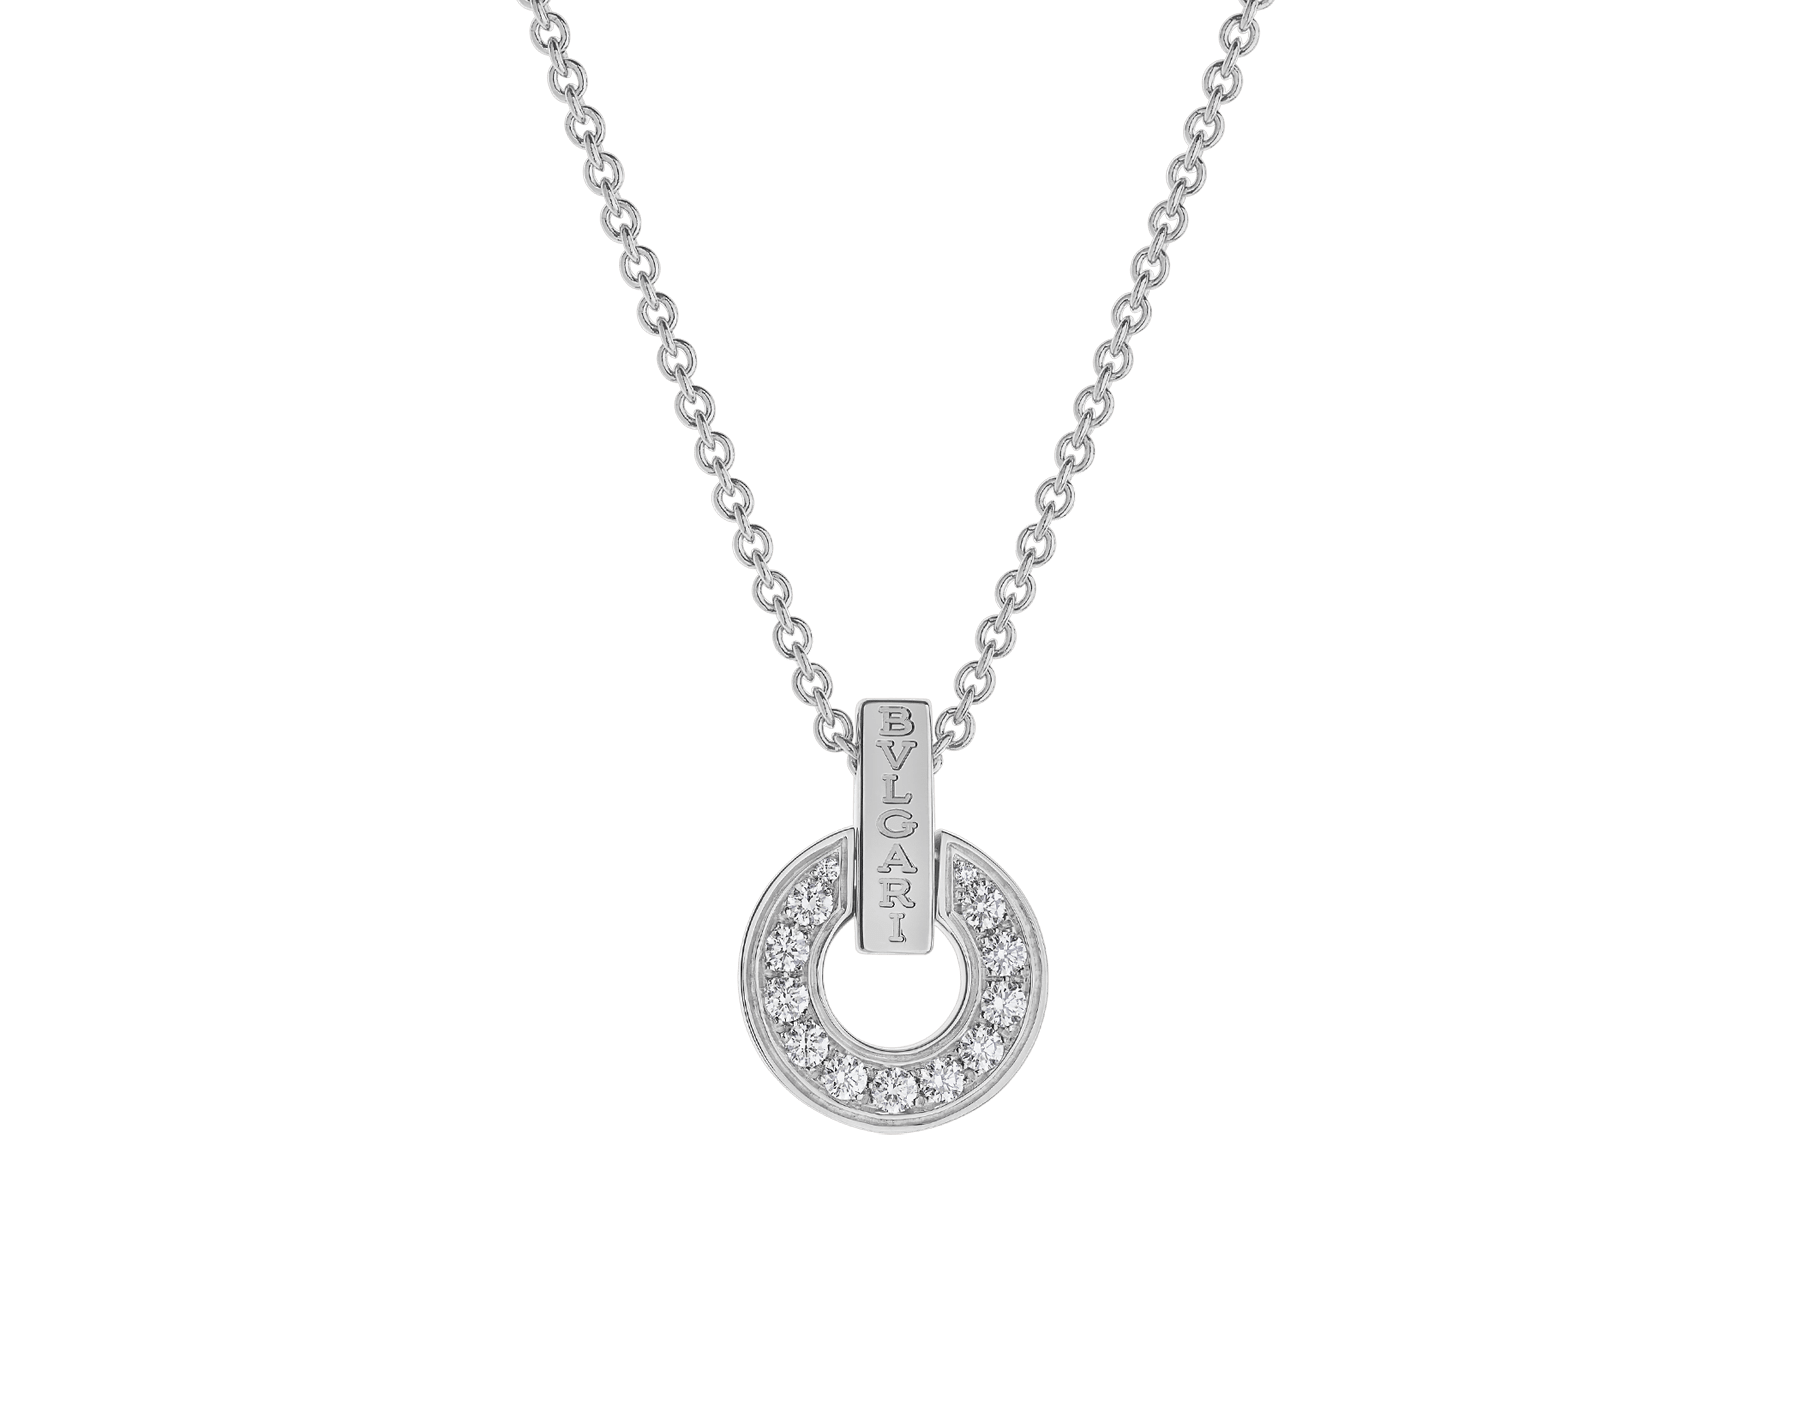 BVLGARI BVLGARI openwork 18 kt white gold necklace set with full pavé diamonds on the pendant 357938 image 1